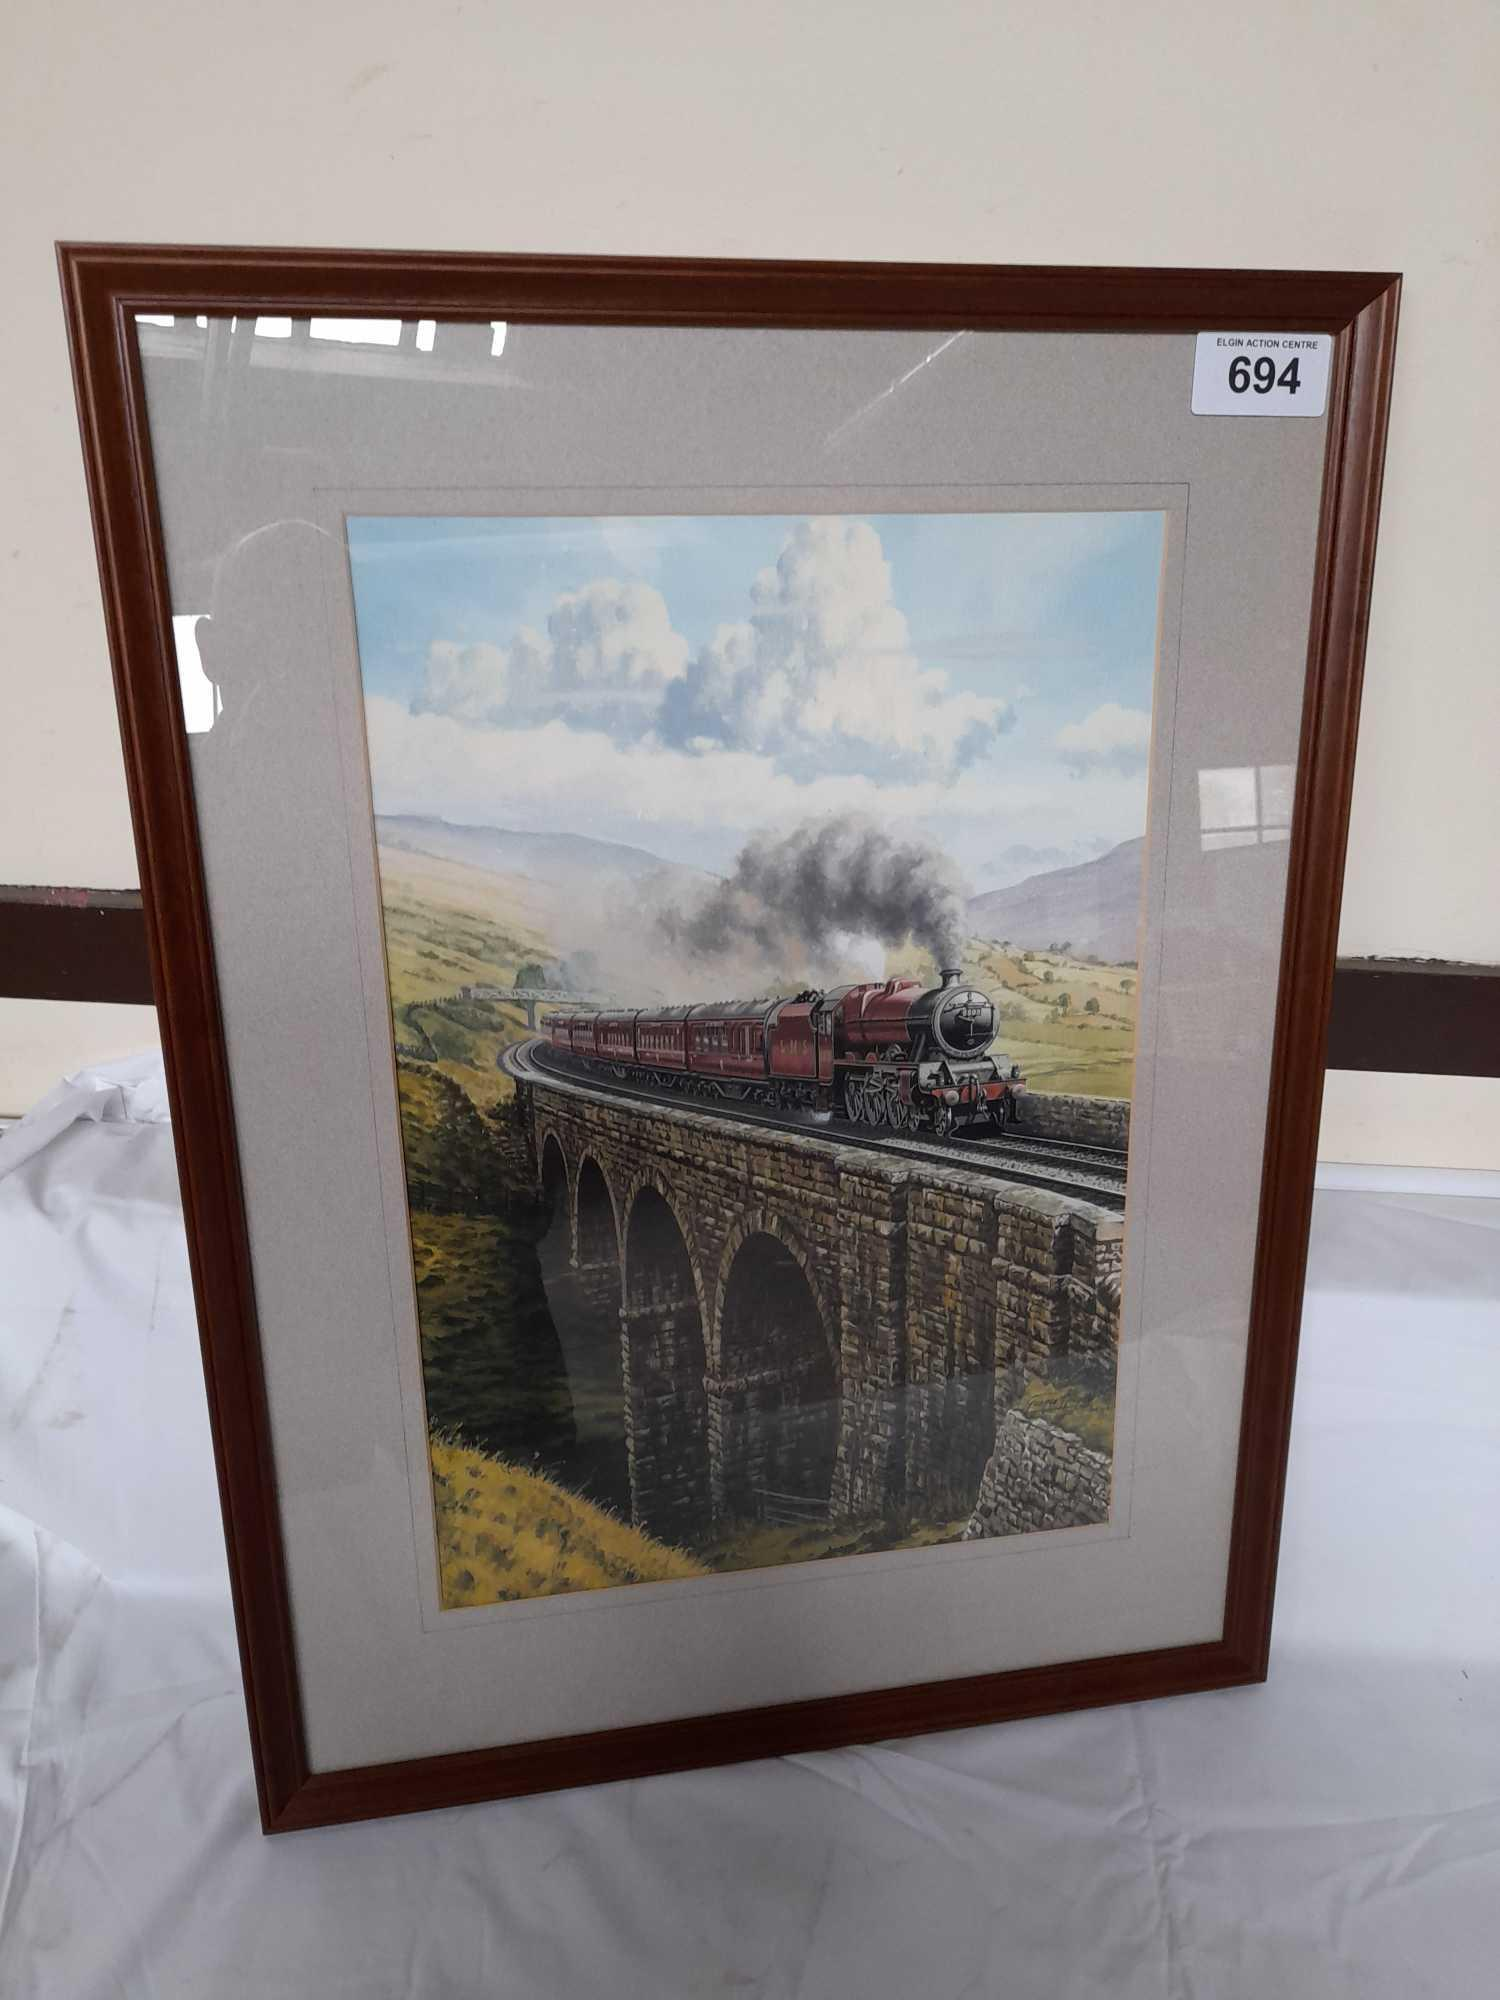 W C PAINTING BY G HEIRON 1990 JUBILEE 5593 ON VIADUCT